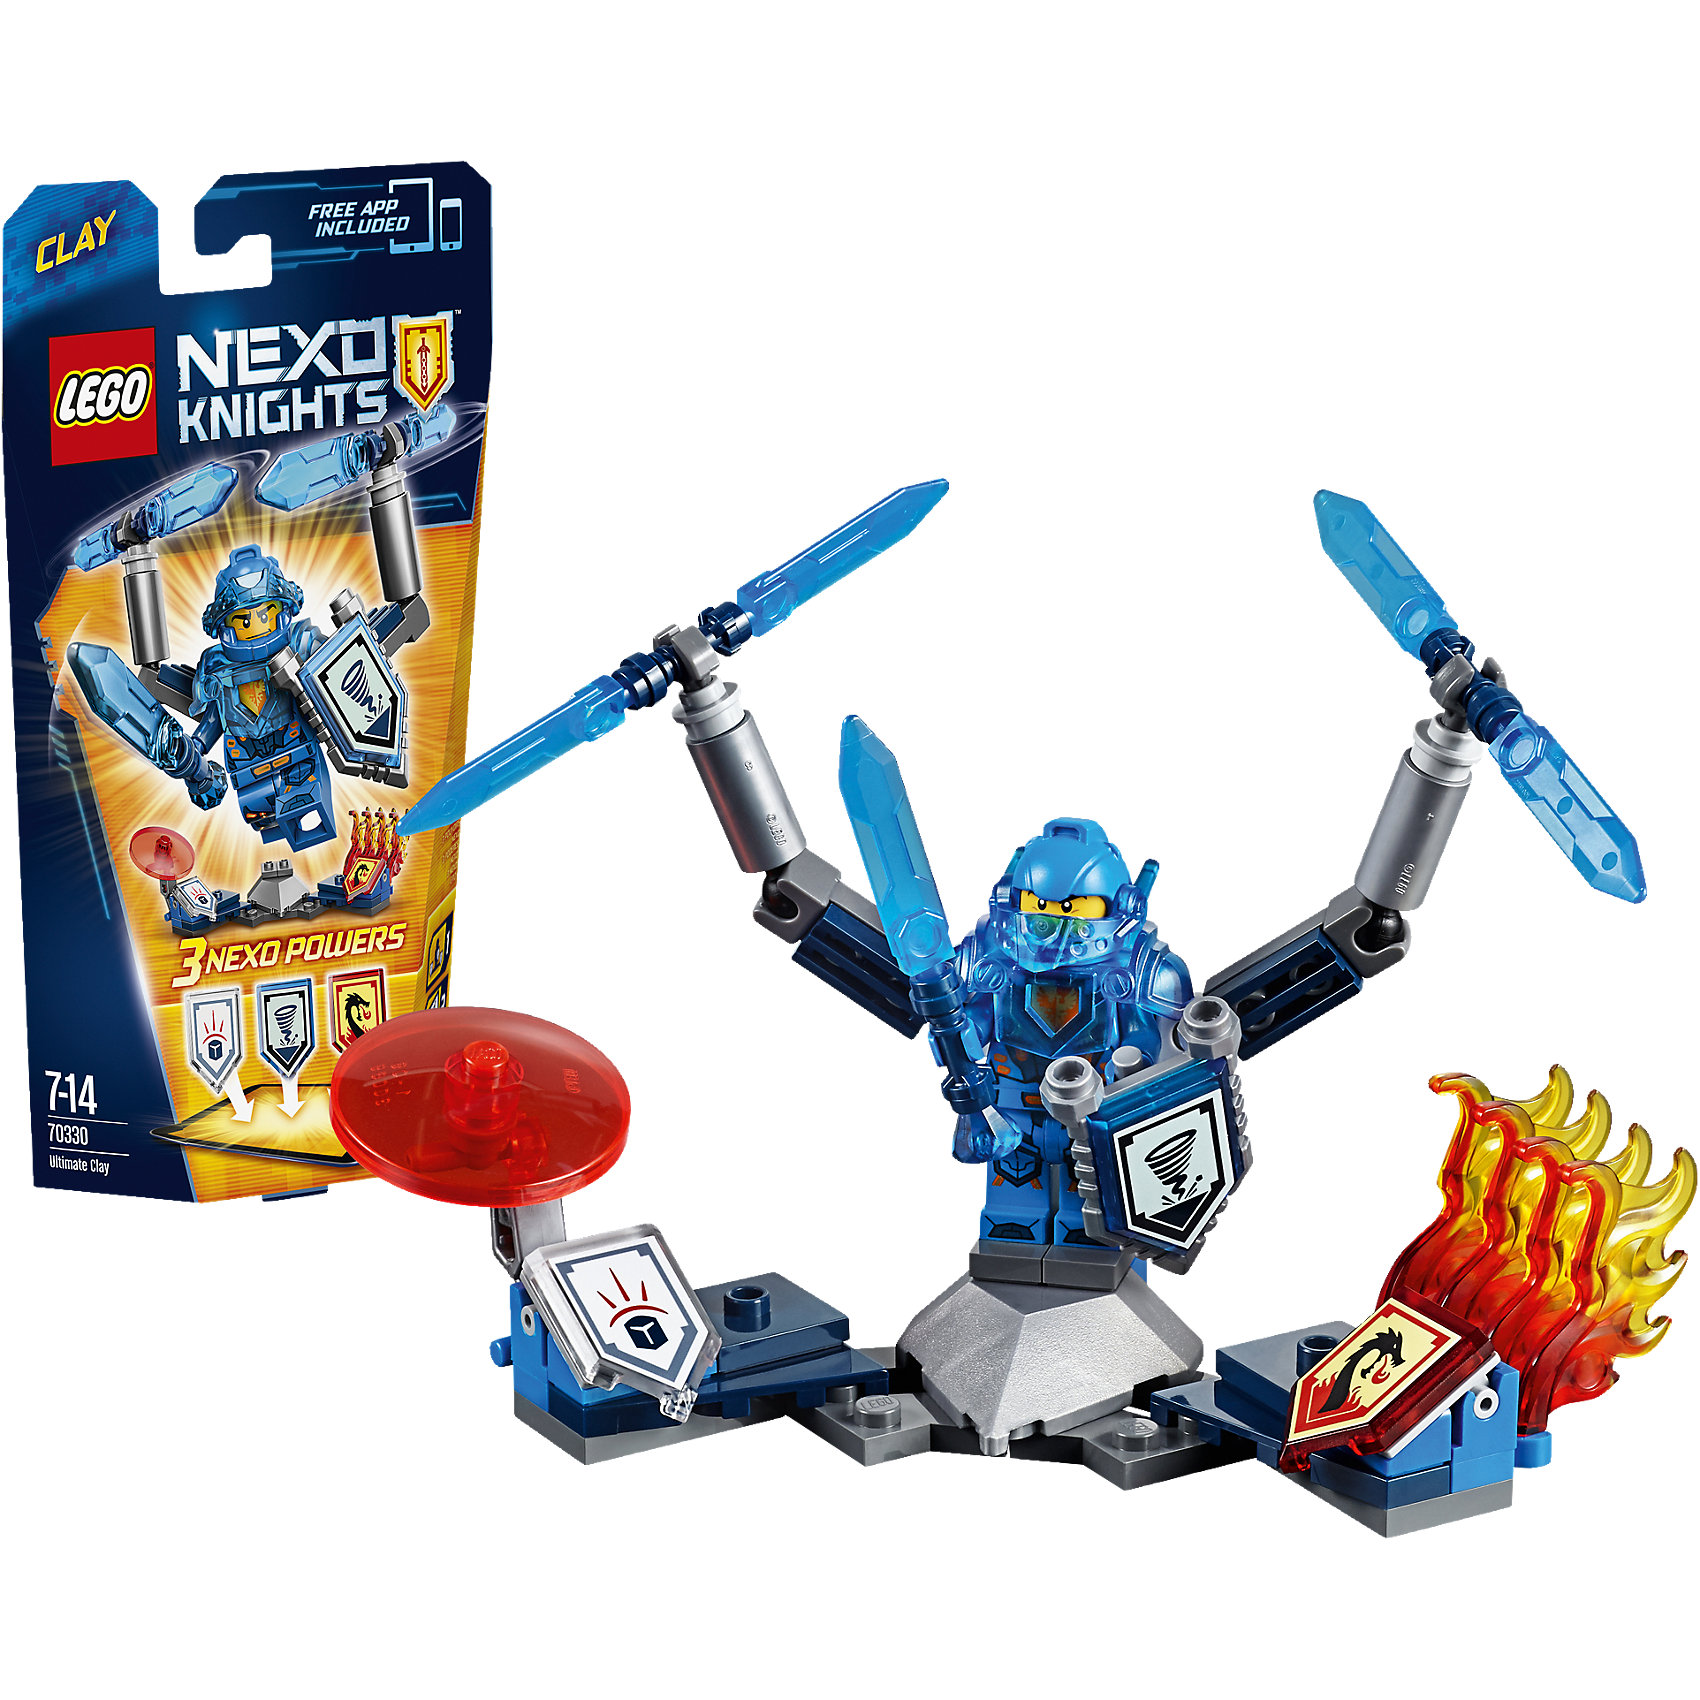 LEGO LEGO NEXO KNIGHTS 70330: Клэй – Абсолютная сила knights of sidonia volume 6